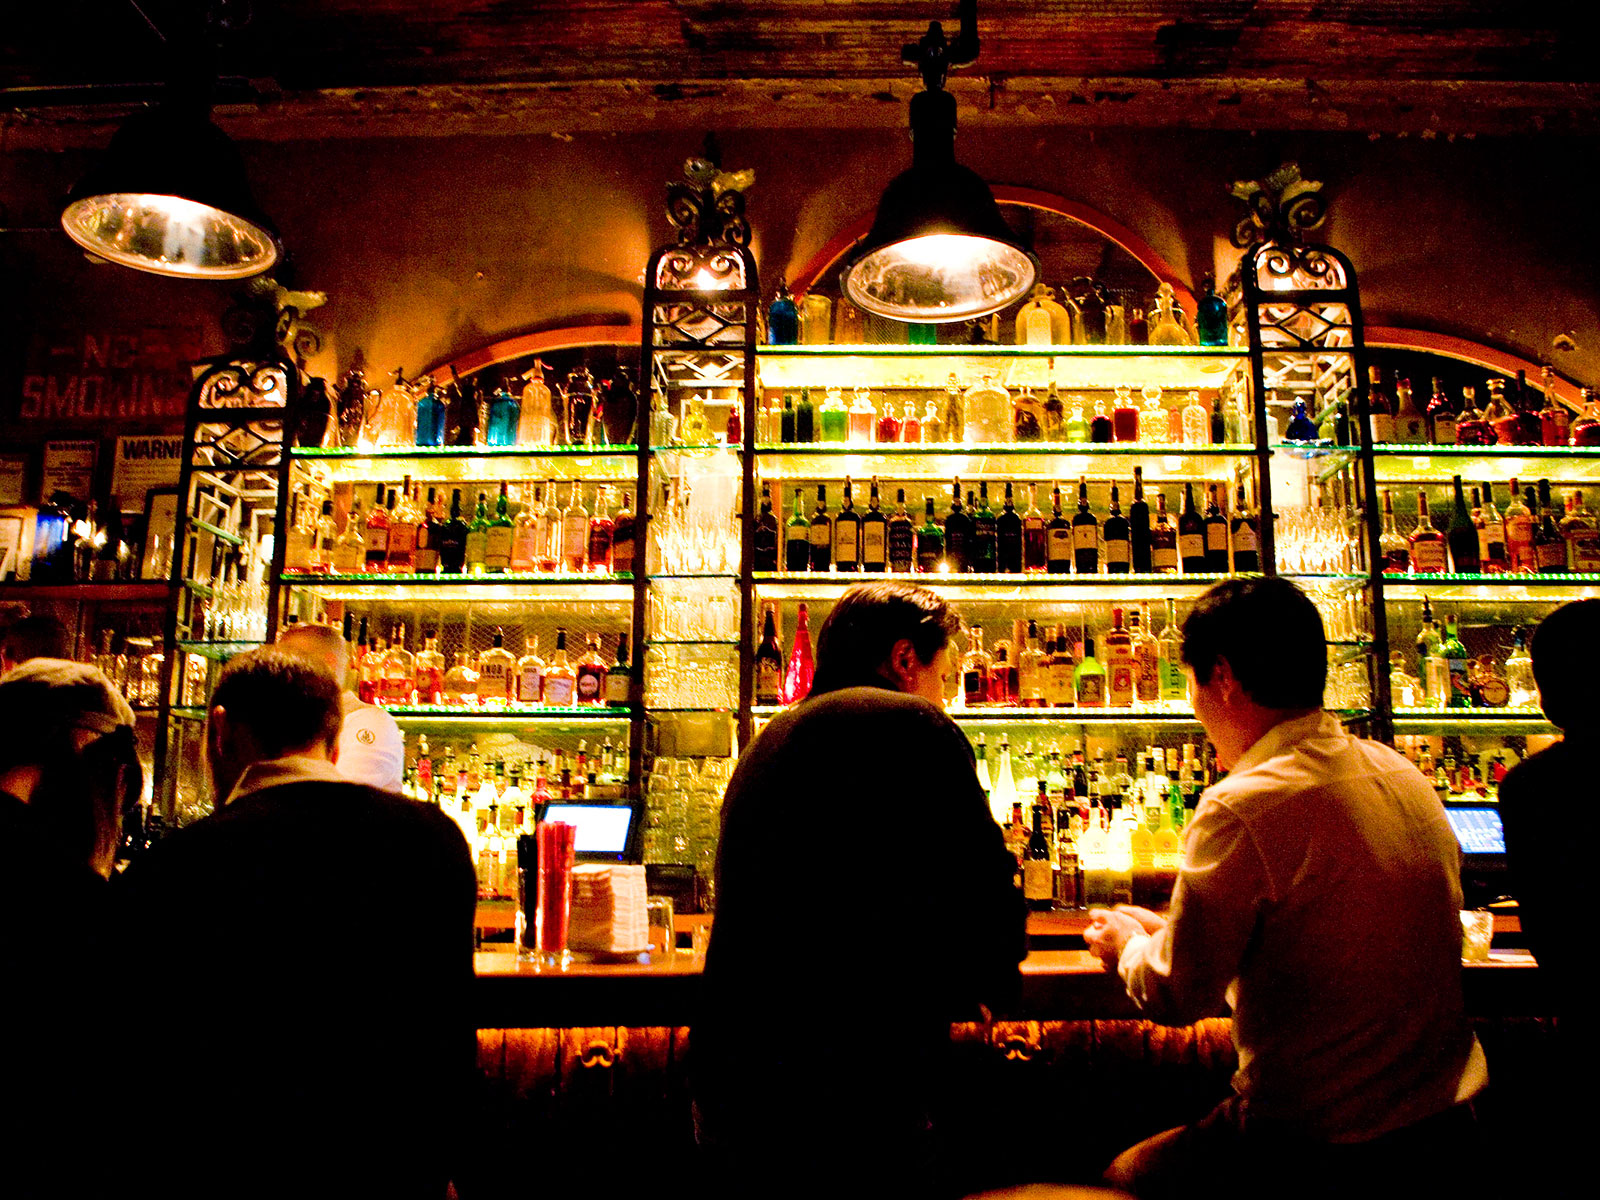 dancing at the bar in new york city is illegal